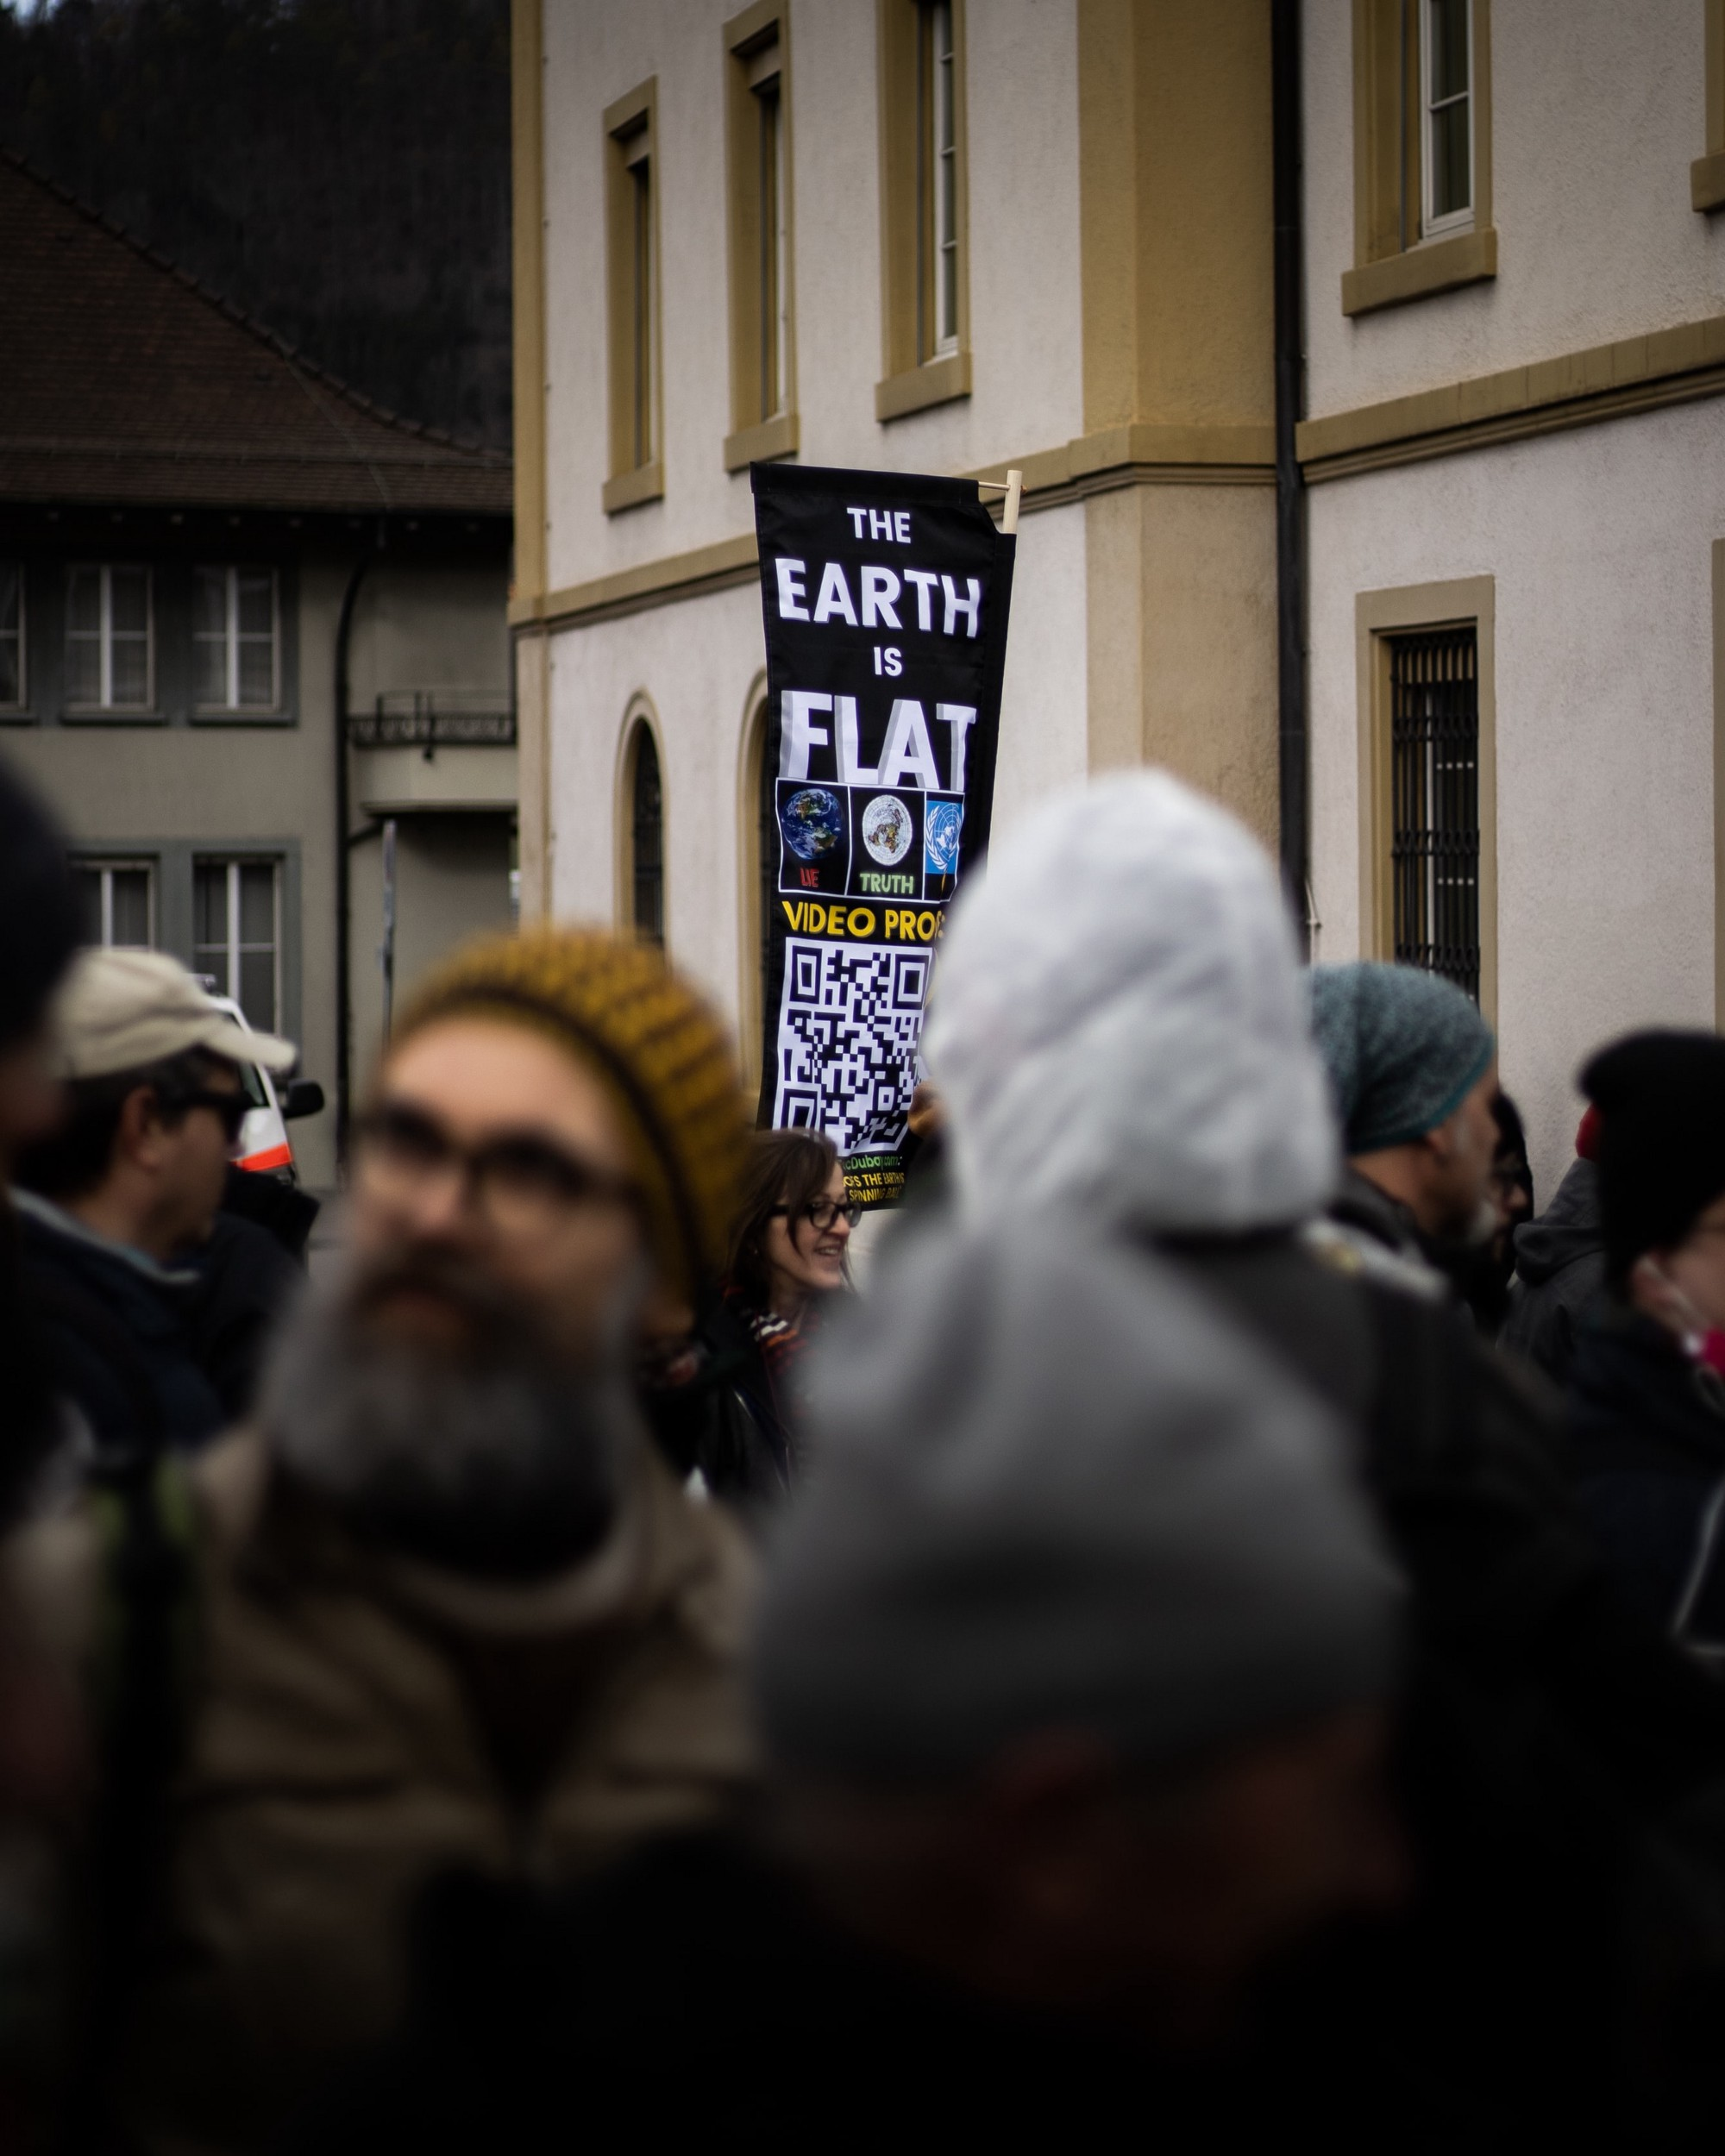 """People in the streets. One person is holding a black sign with white letters that say """"The Earth Is Flat."""" There are 3 pictures of the earth below that with the words """"Video Project"""" and a QR Code on the bottom."""